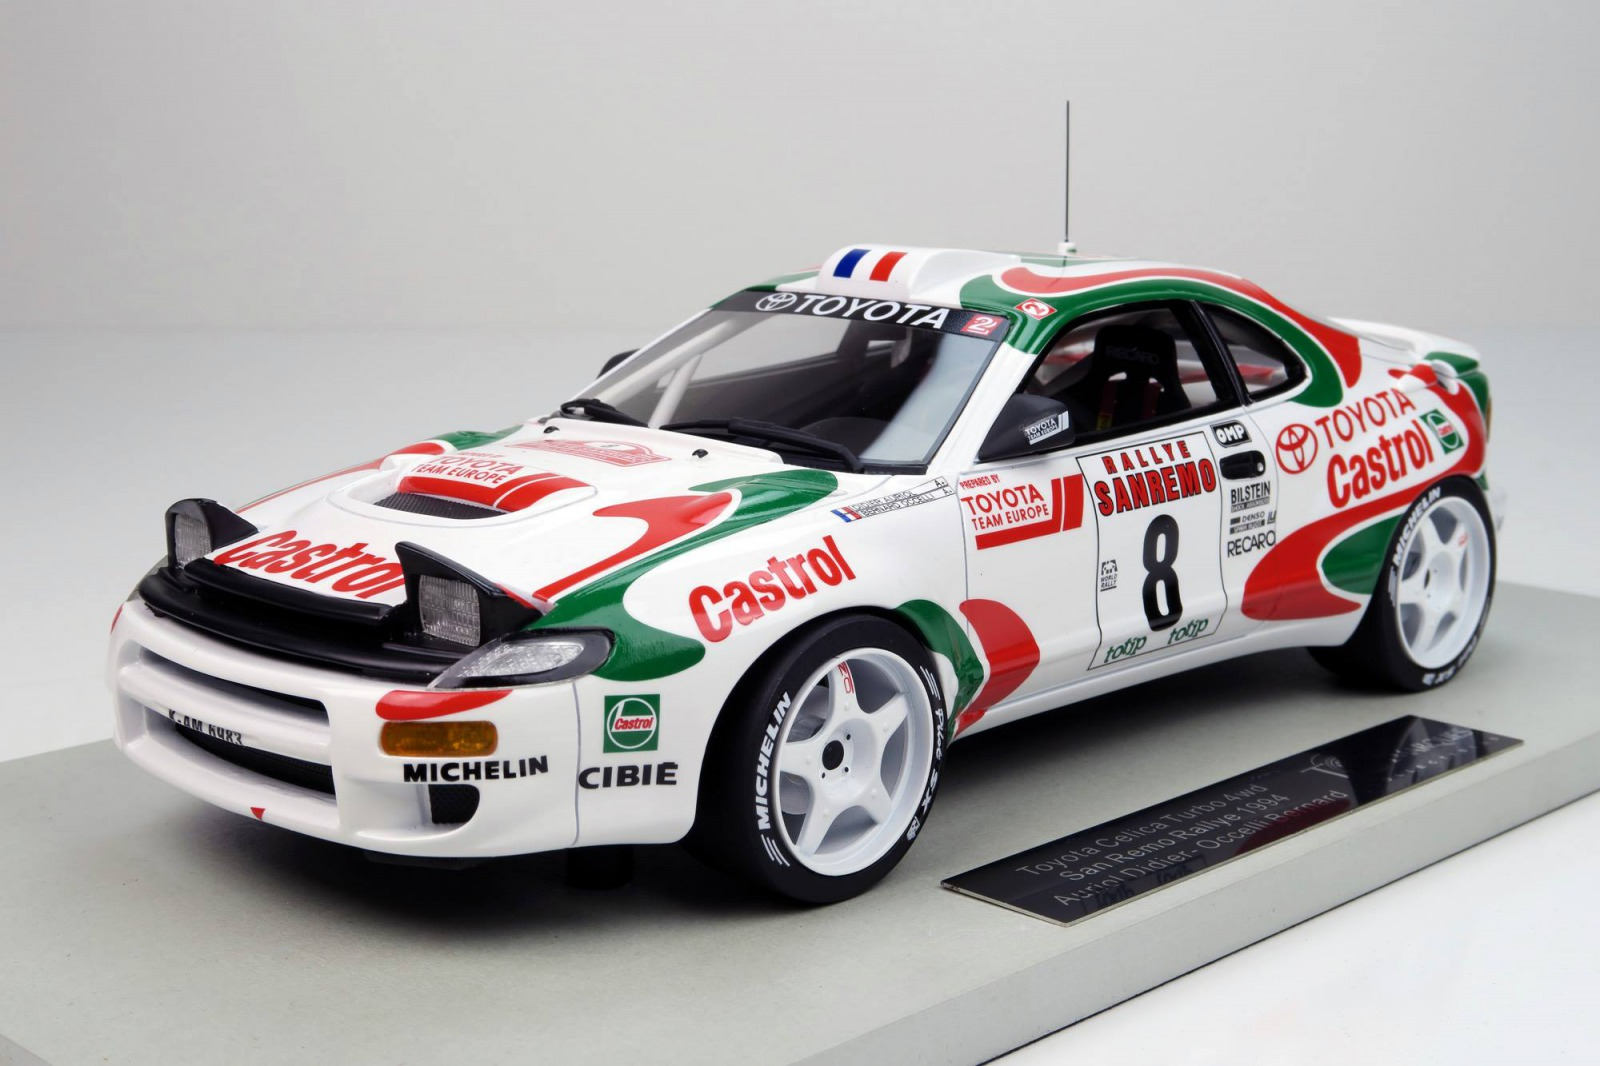 Top Marques トップマルケス 1:18 1994年ラリー・サンレモ優勝 トヨタ セリカ No.8TOYOTA - CELICA GT4 TURBO 4WD (ST185) TEAM EUROPE N 8 WINNER RALLY SANREMO 1994 D.AURIOL - B.OCCELLI 1/18 by Top Marques JPN